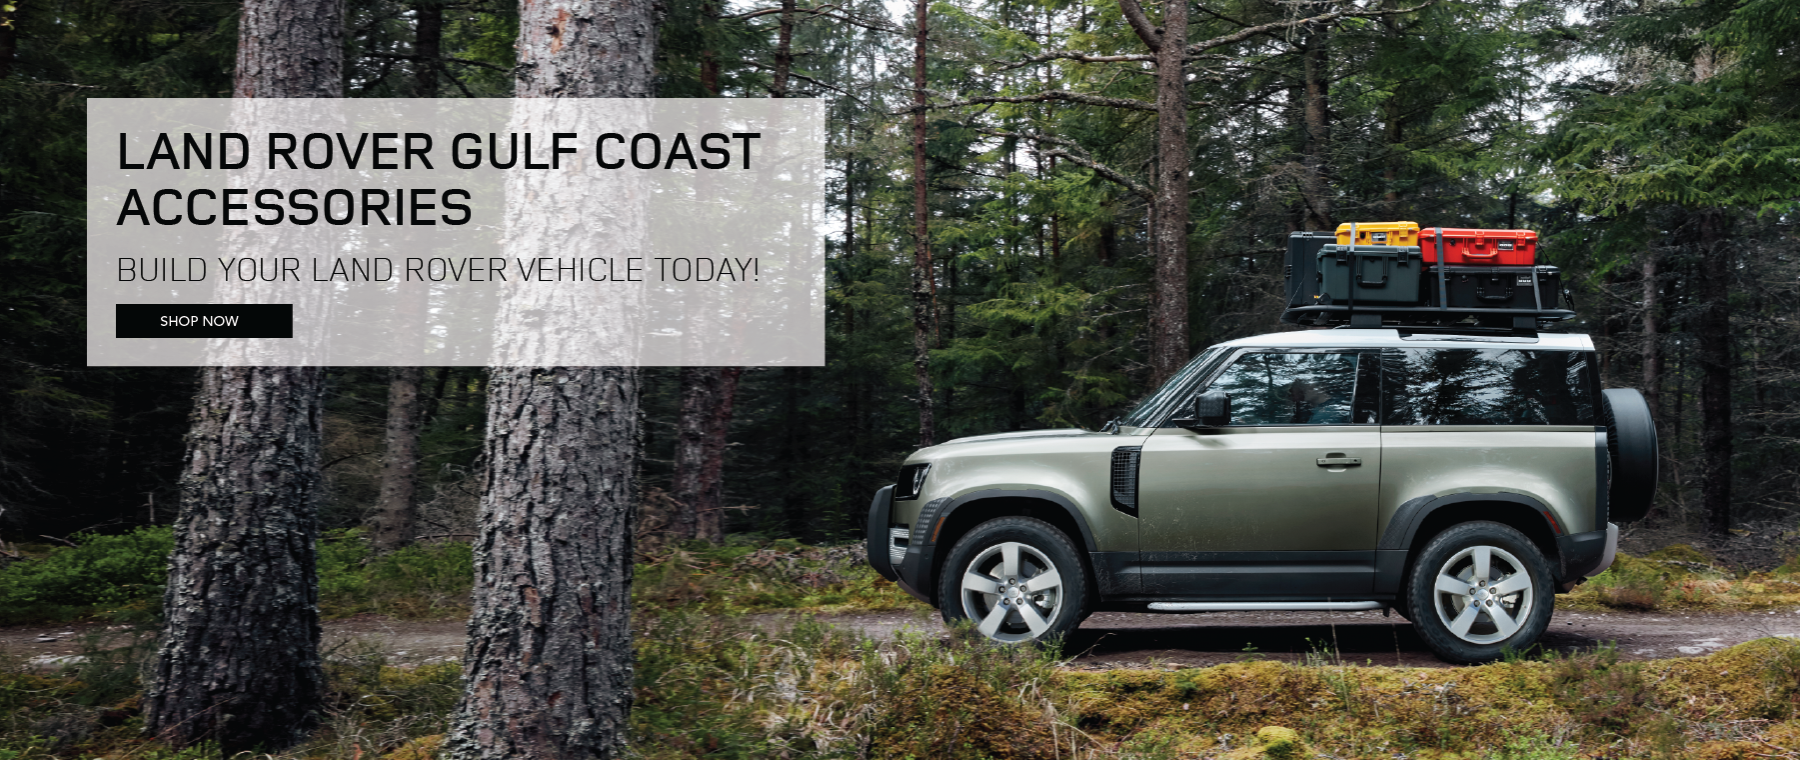 2020 Land Rover Defender driving though wooded road. Click to shop accessories now!